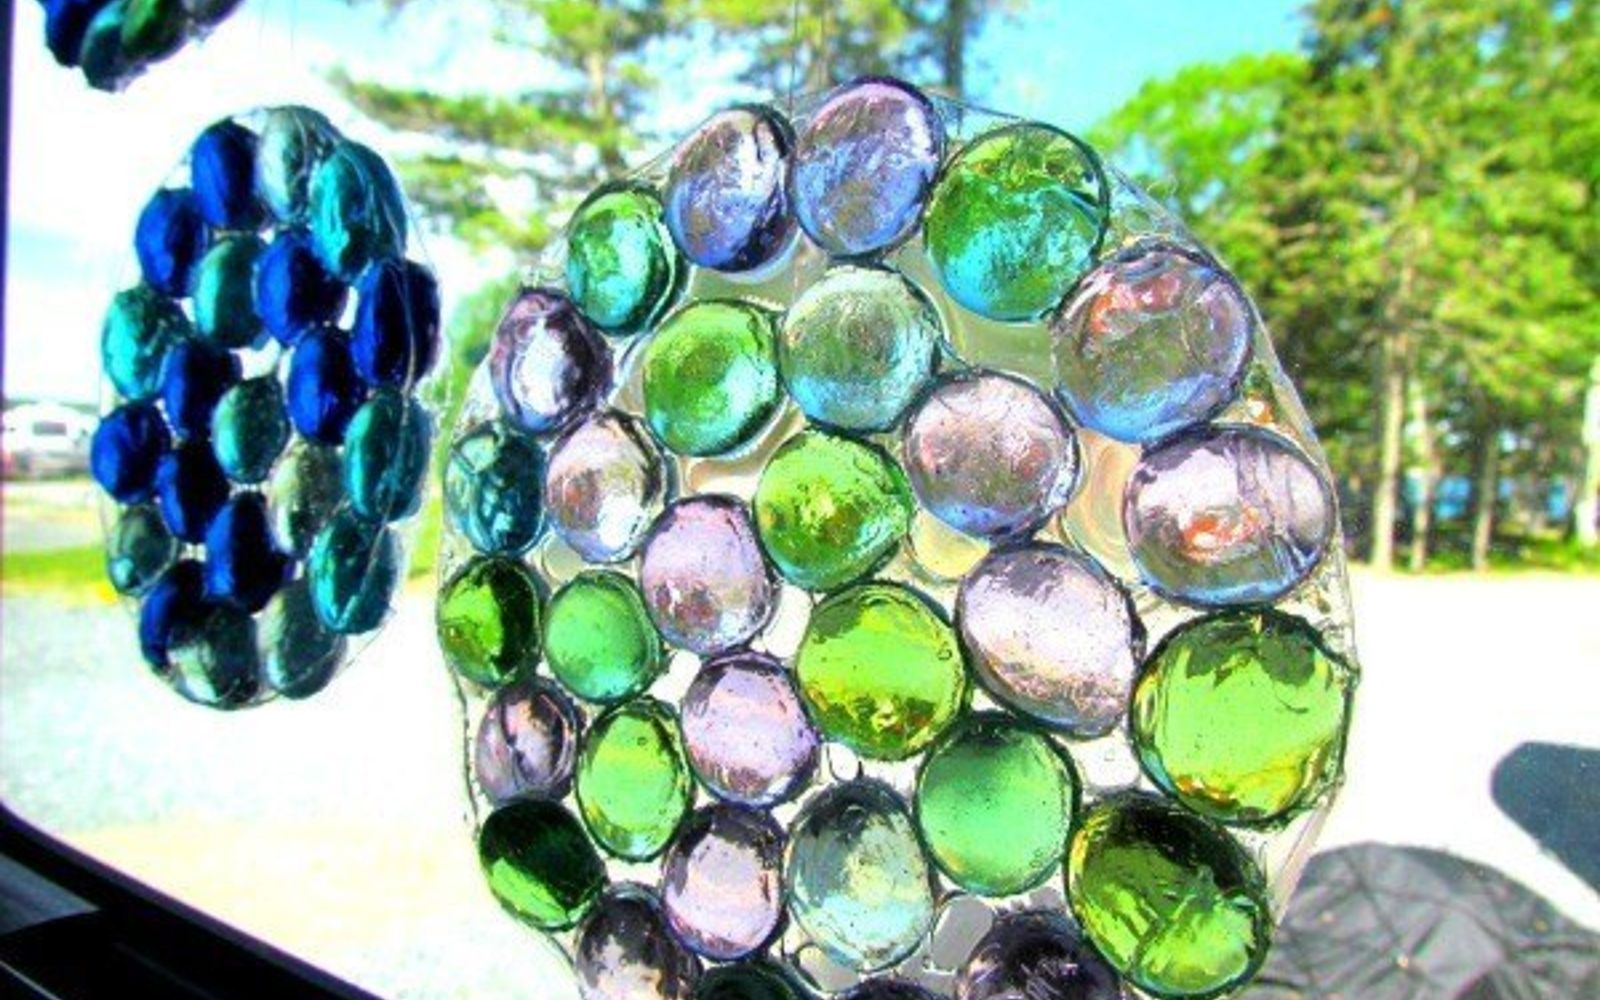 s 14 hidden home decor gems you can find in any dollar store, home decor, repurposing upcycling, A bag of glass gems can light up a room